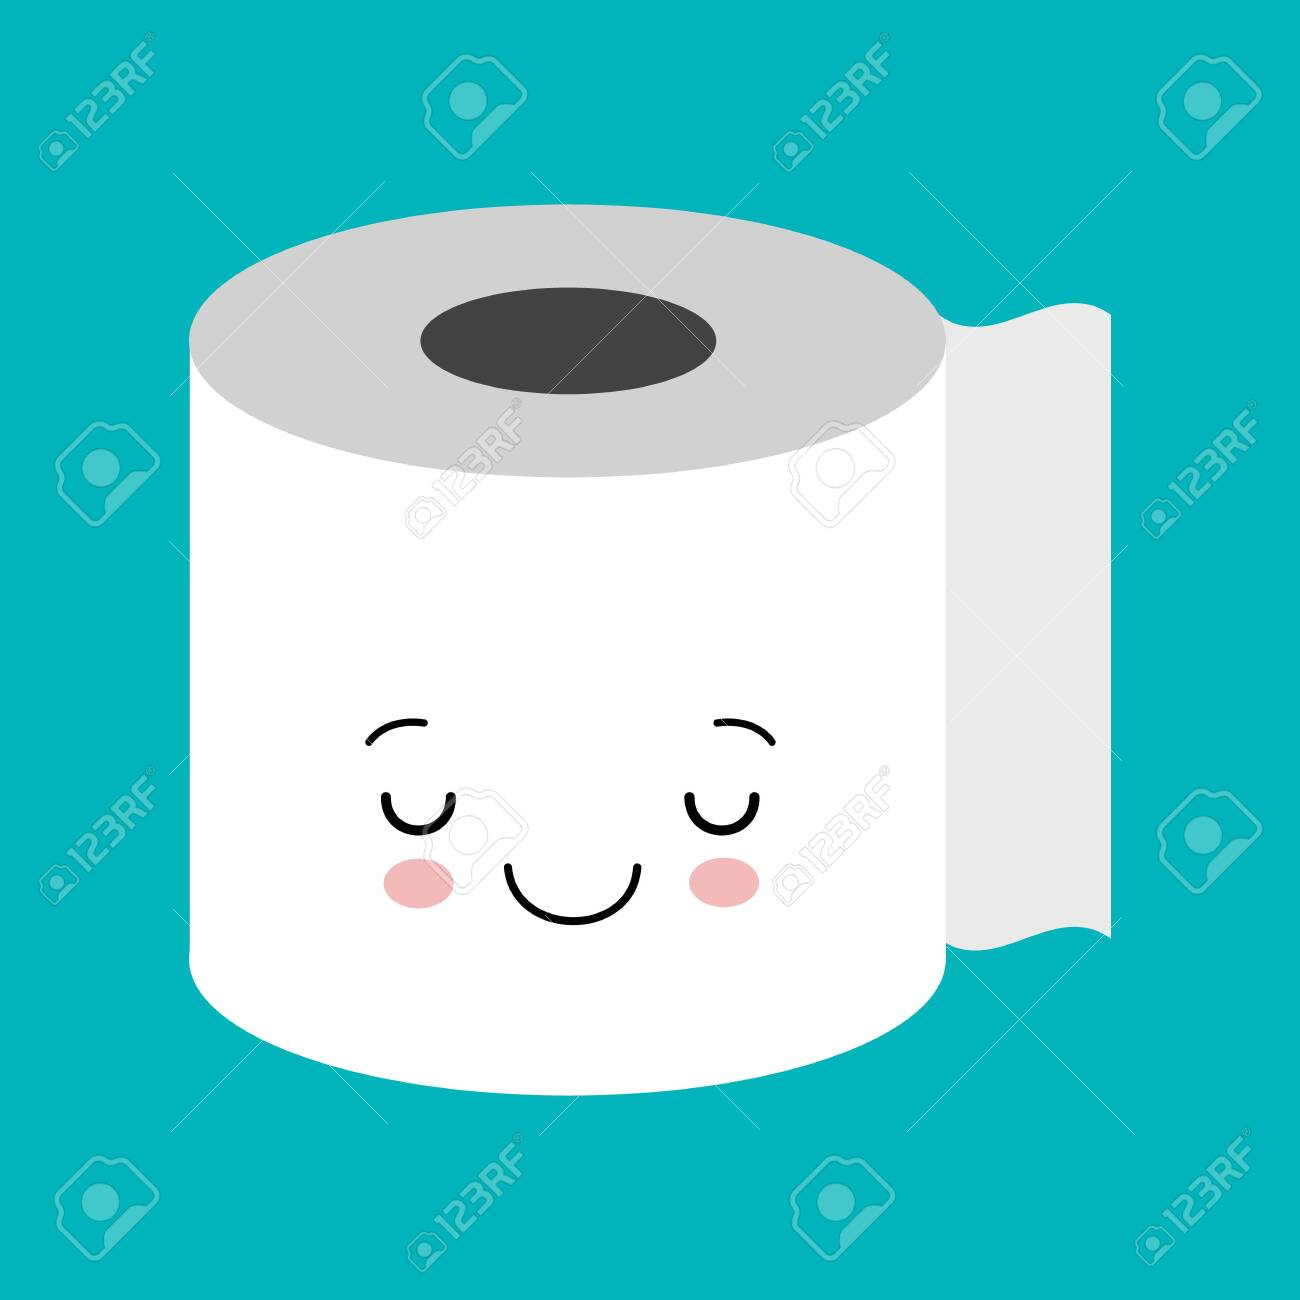 Funny Happy Cute Smiling Toilet Paper Vector Flat Cartoon Character